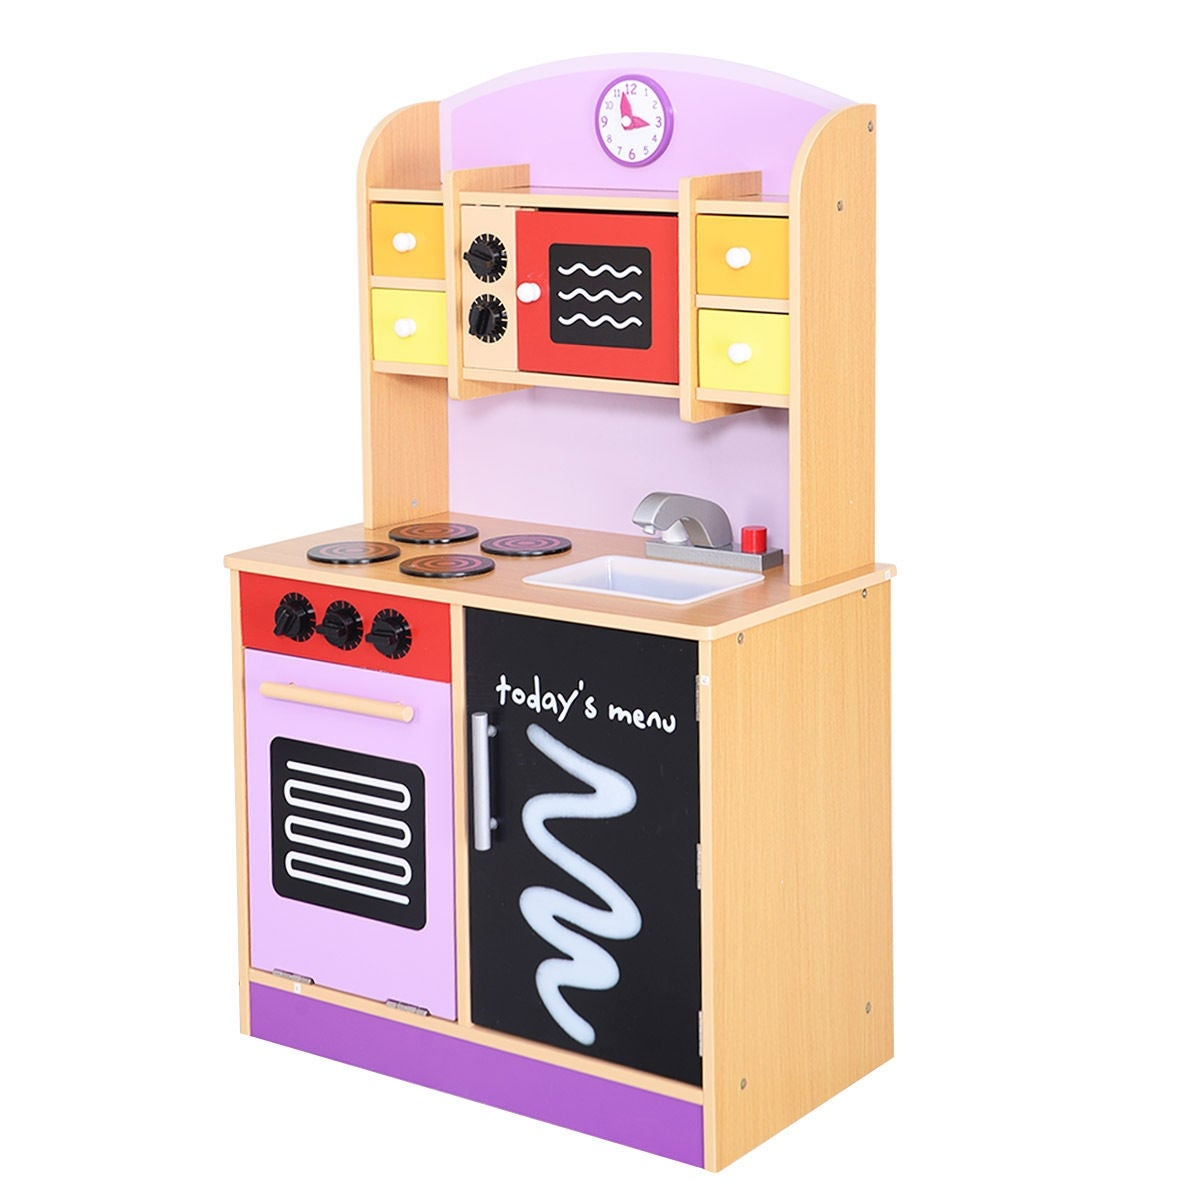 Shop Generic Wood Kitchen Toy Kids Cooking Pretend Play Set Toddler Wooden  Playset   Pink   Free Shipping Today   Overstock.com   16004193